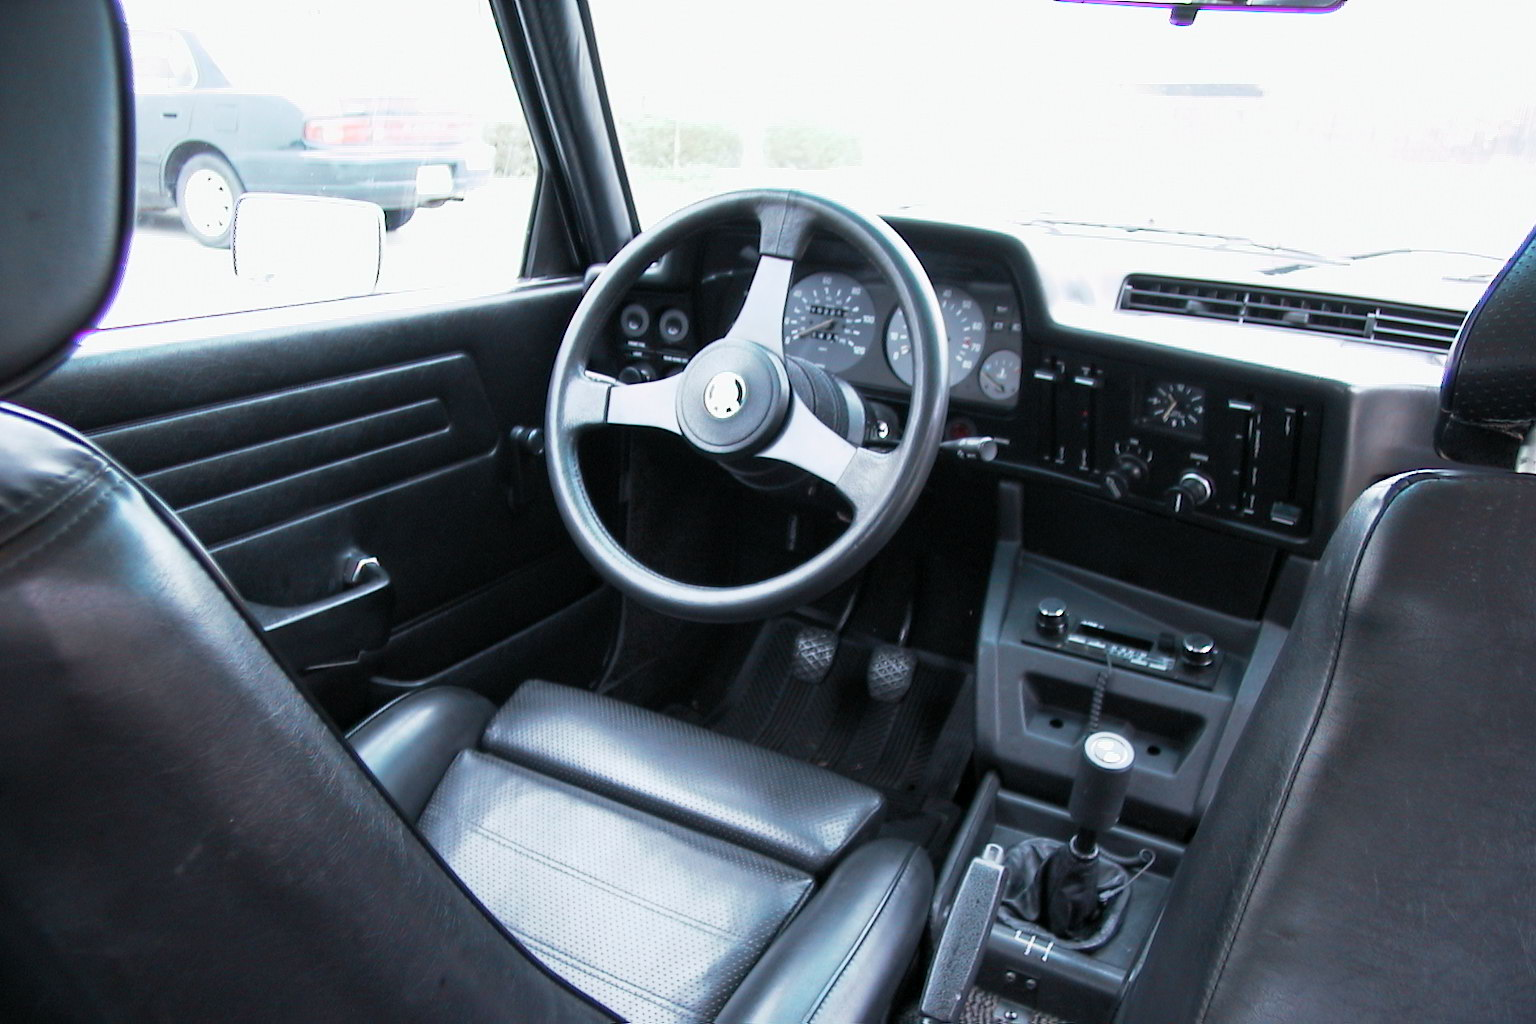 1977 bmw 320i interior | Flickr - Photo Sharing!